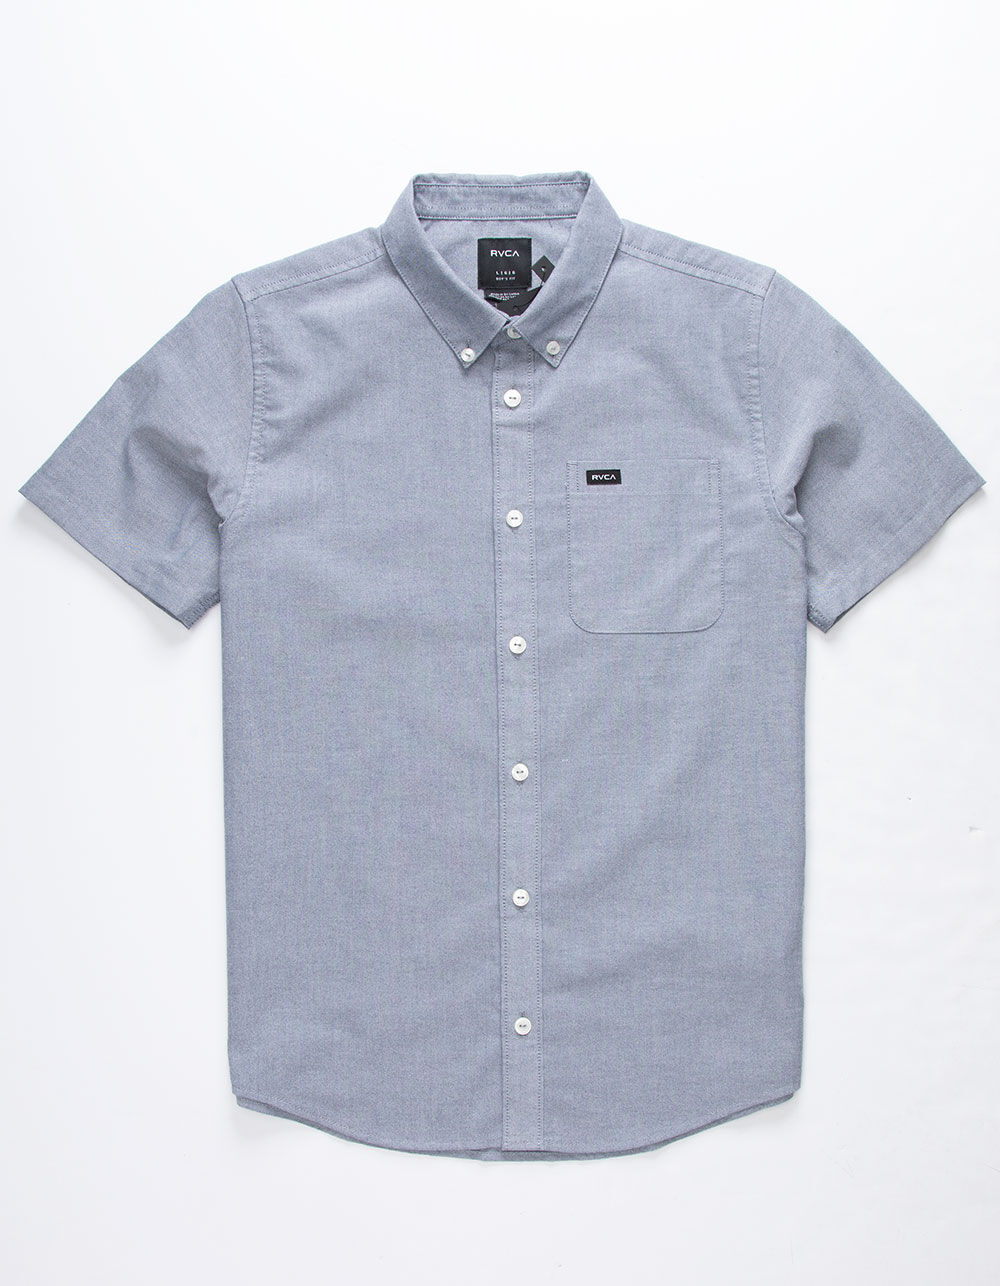 RVCA That'll Do Stretch Light Blue Boys Shirt